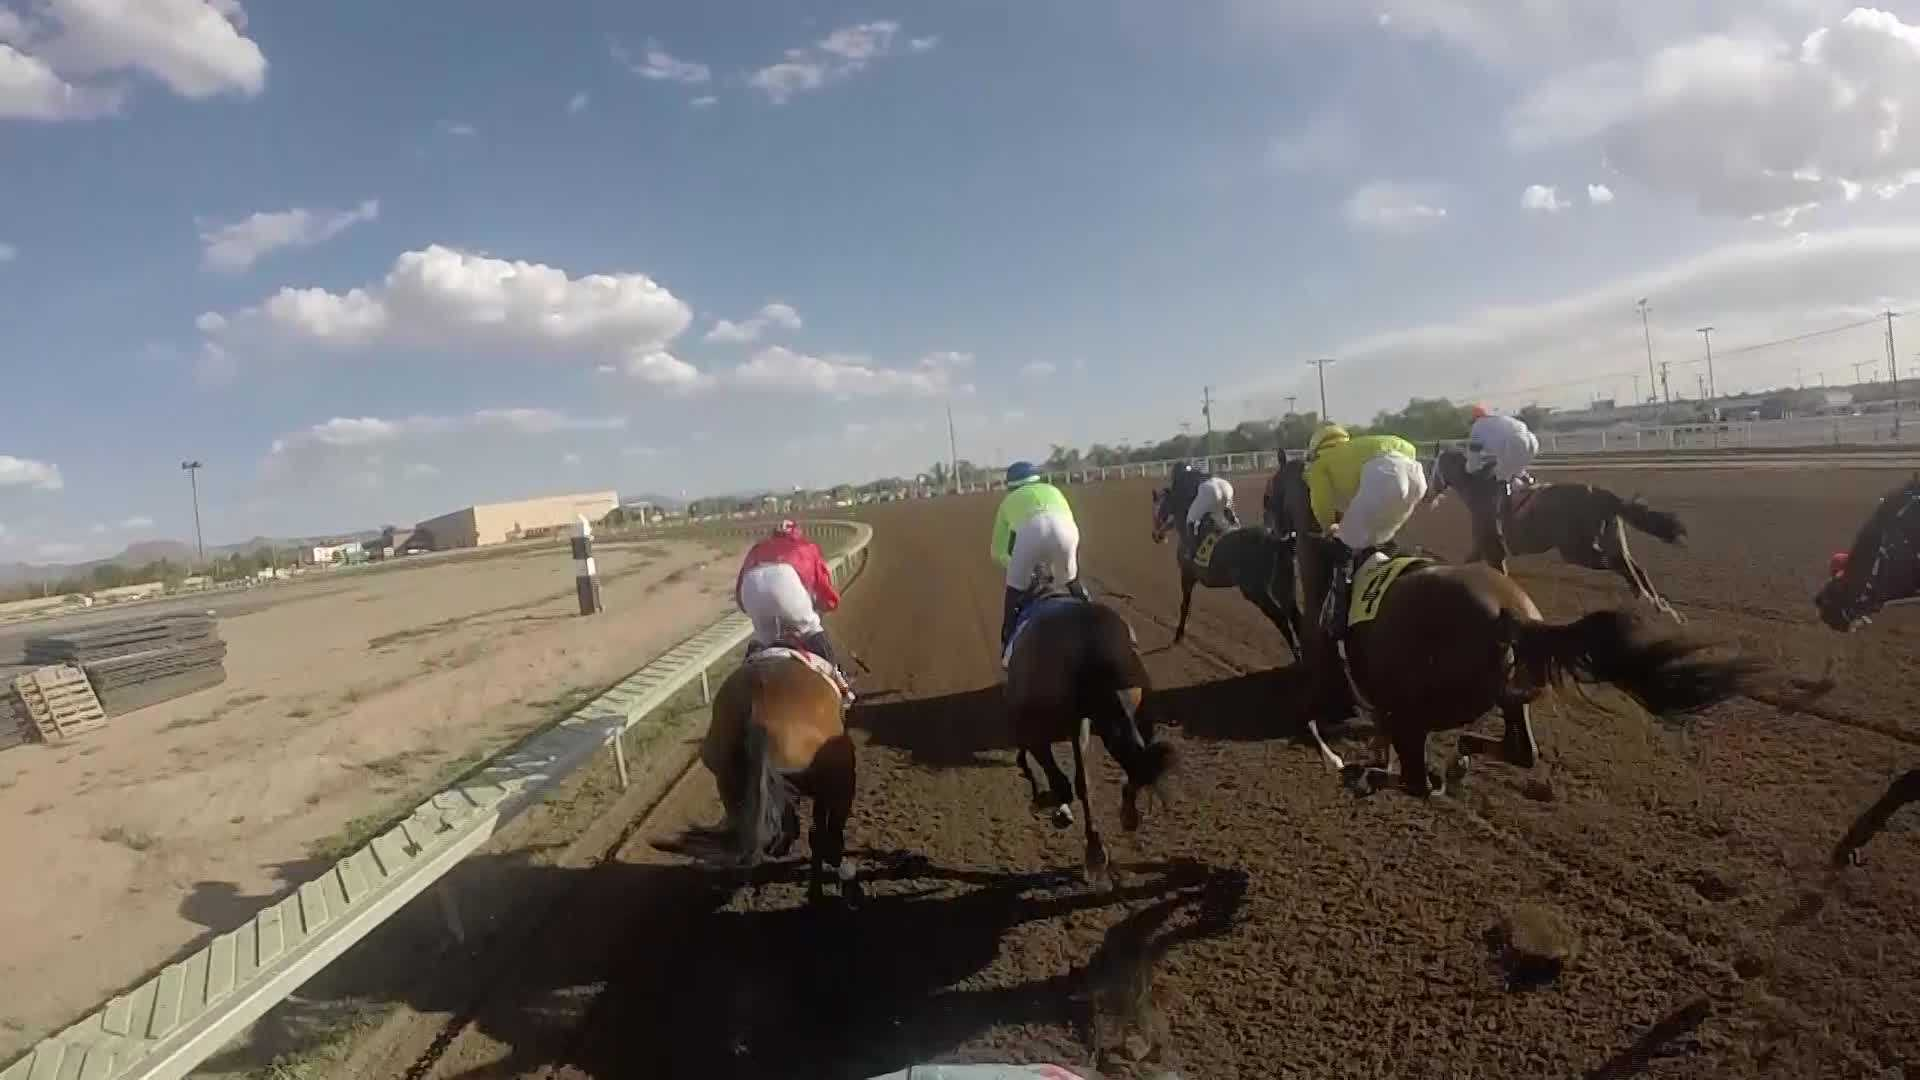 Action 7 News strapped a GoPro camera on a jockey during an actual race. See the breathtaking video!